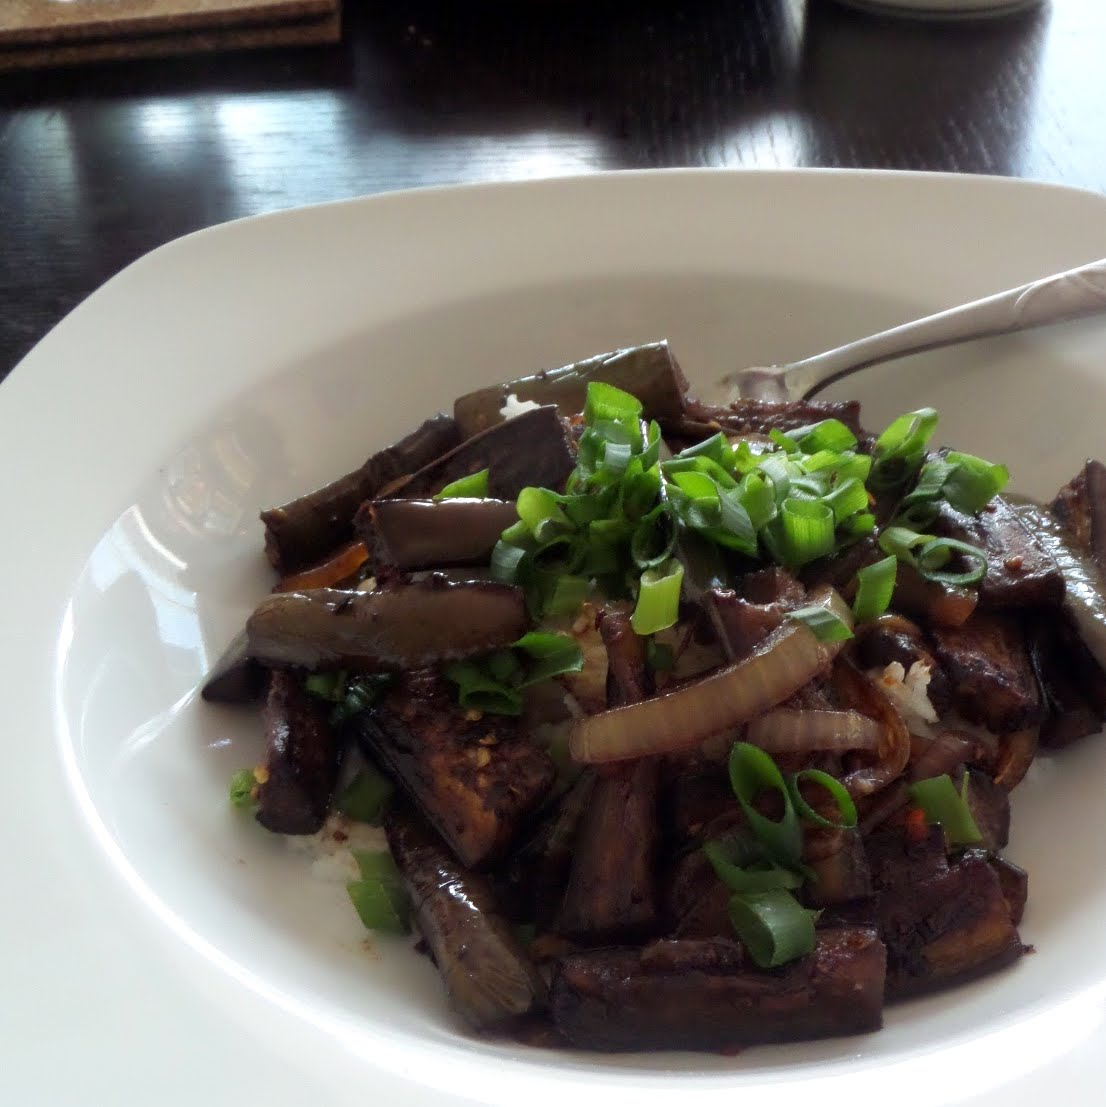 Szechuan Eggplant:  A quick and easy meatless stir fry made with eggplant, garlic, ginger, and soy sauce.  #meatless